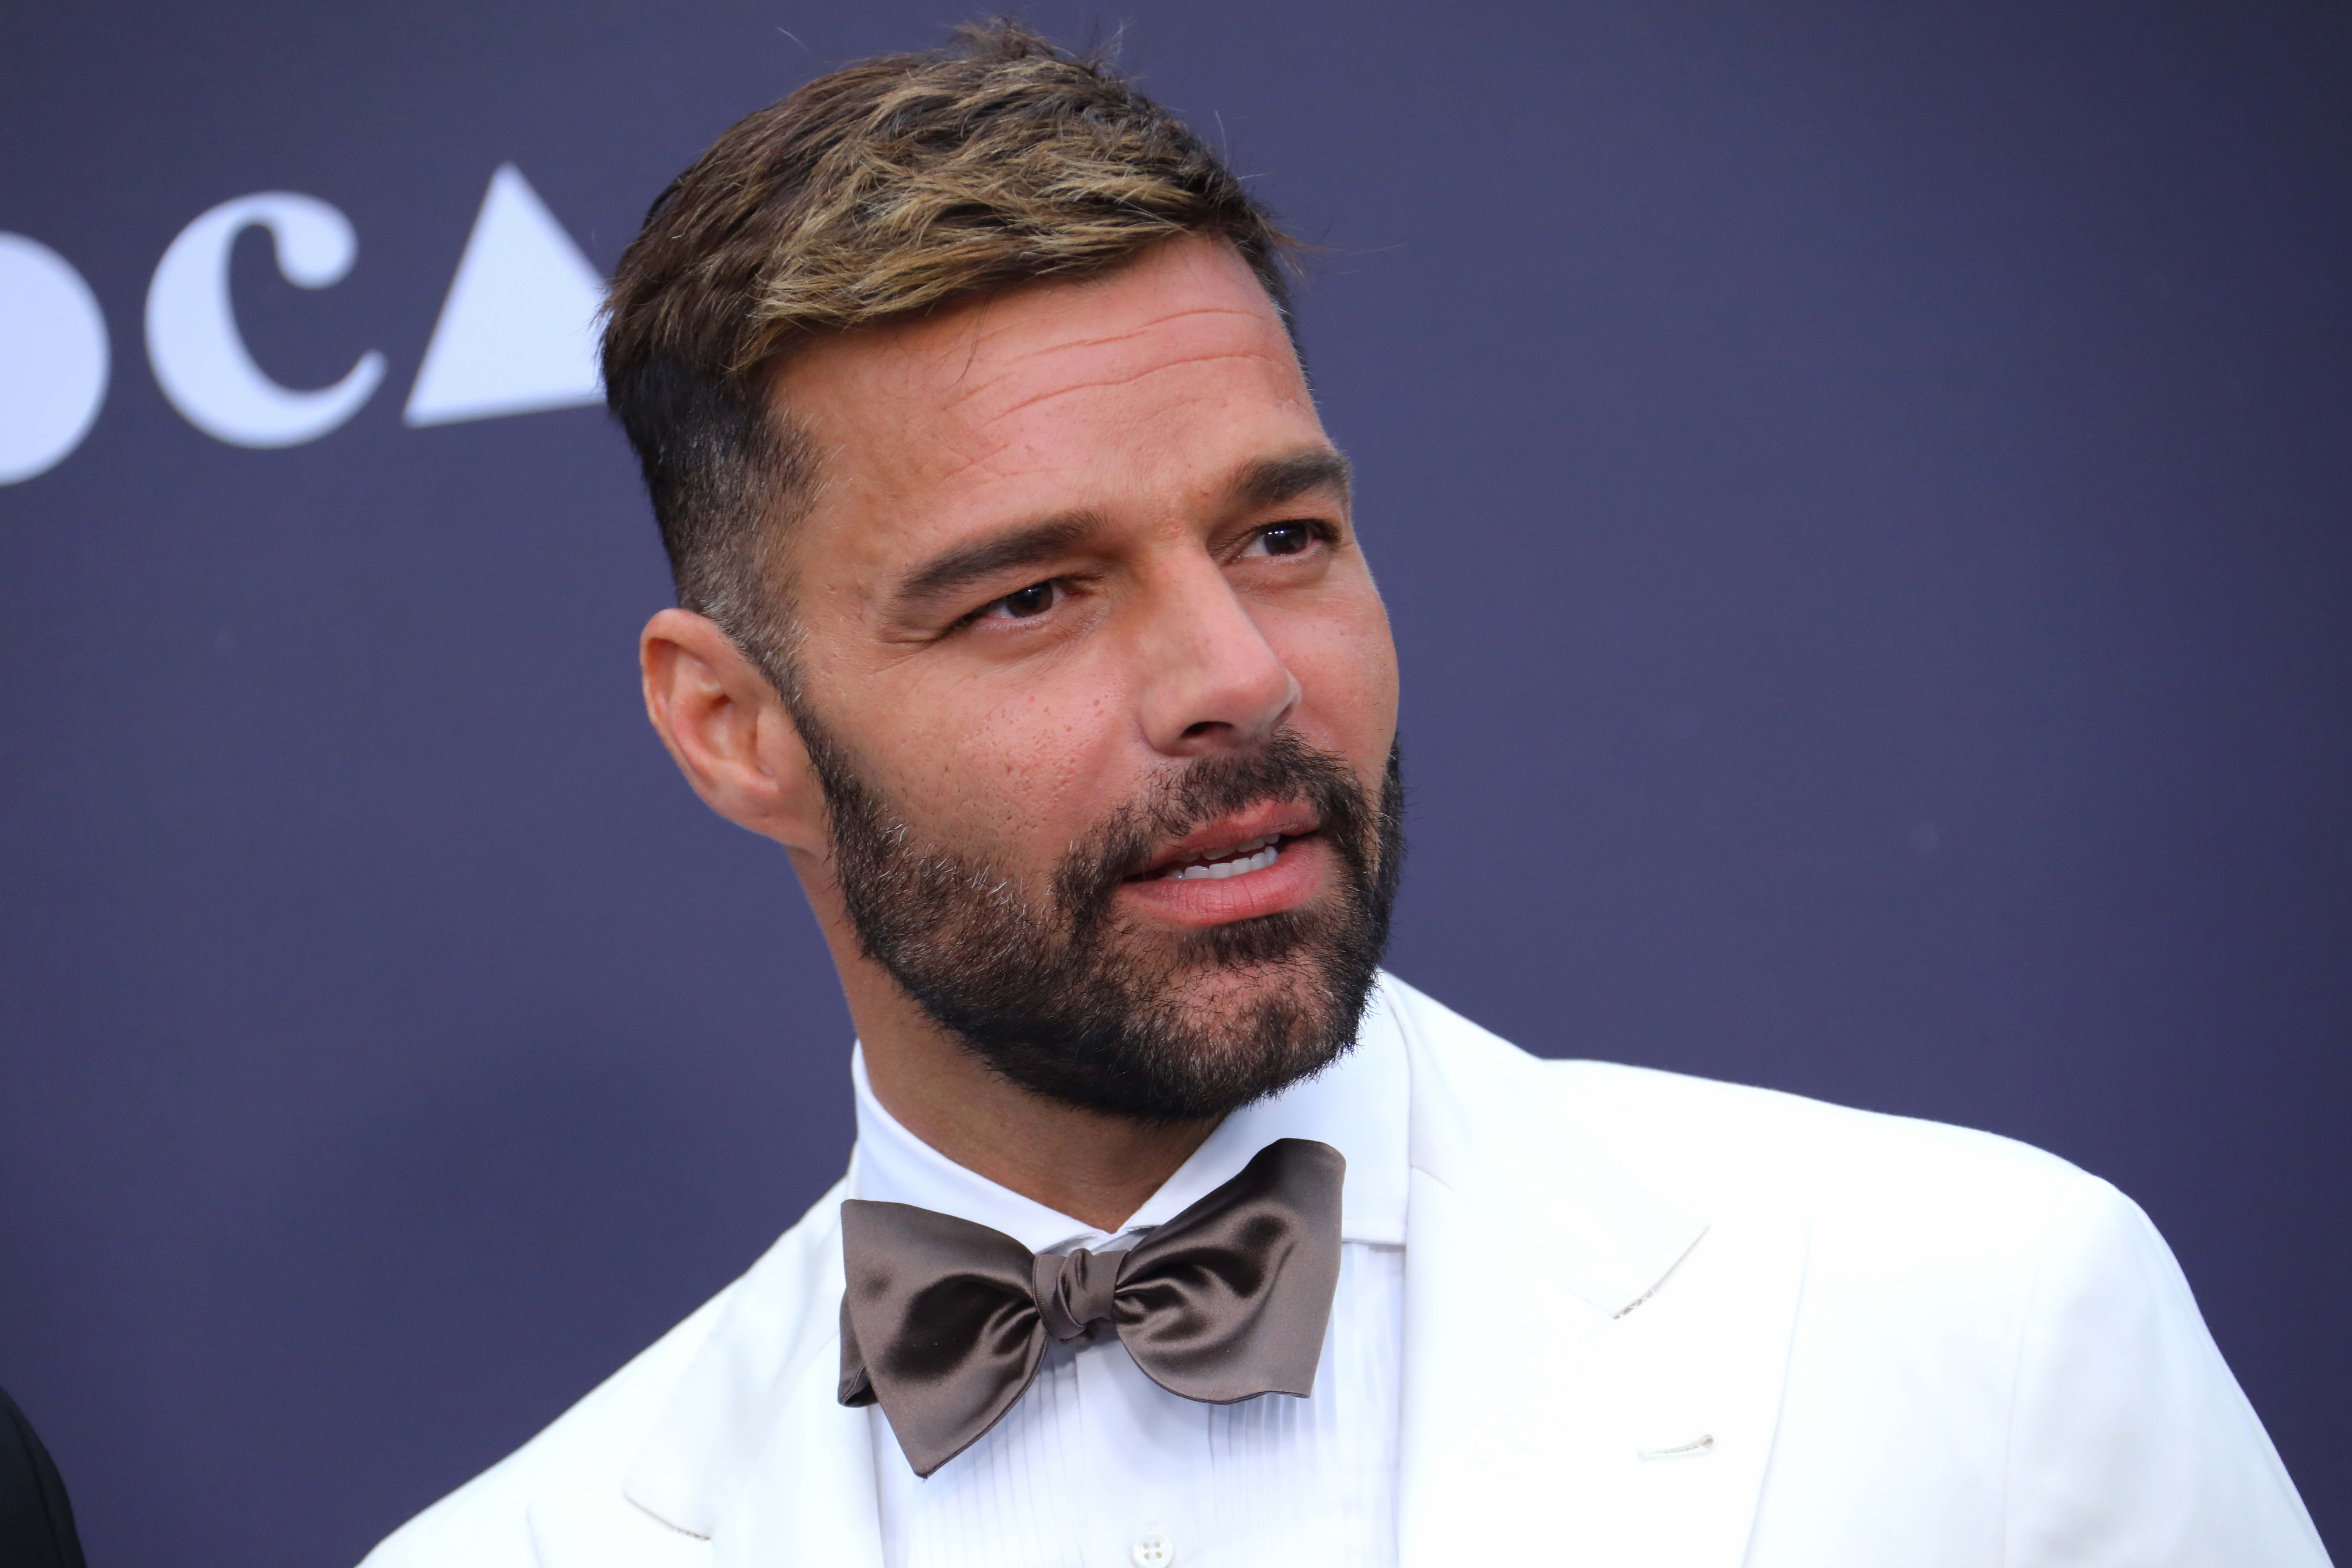 Ricky Martin's Tour 2020 Announcement: Here's What We Hope to See